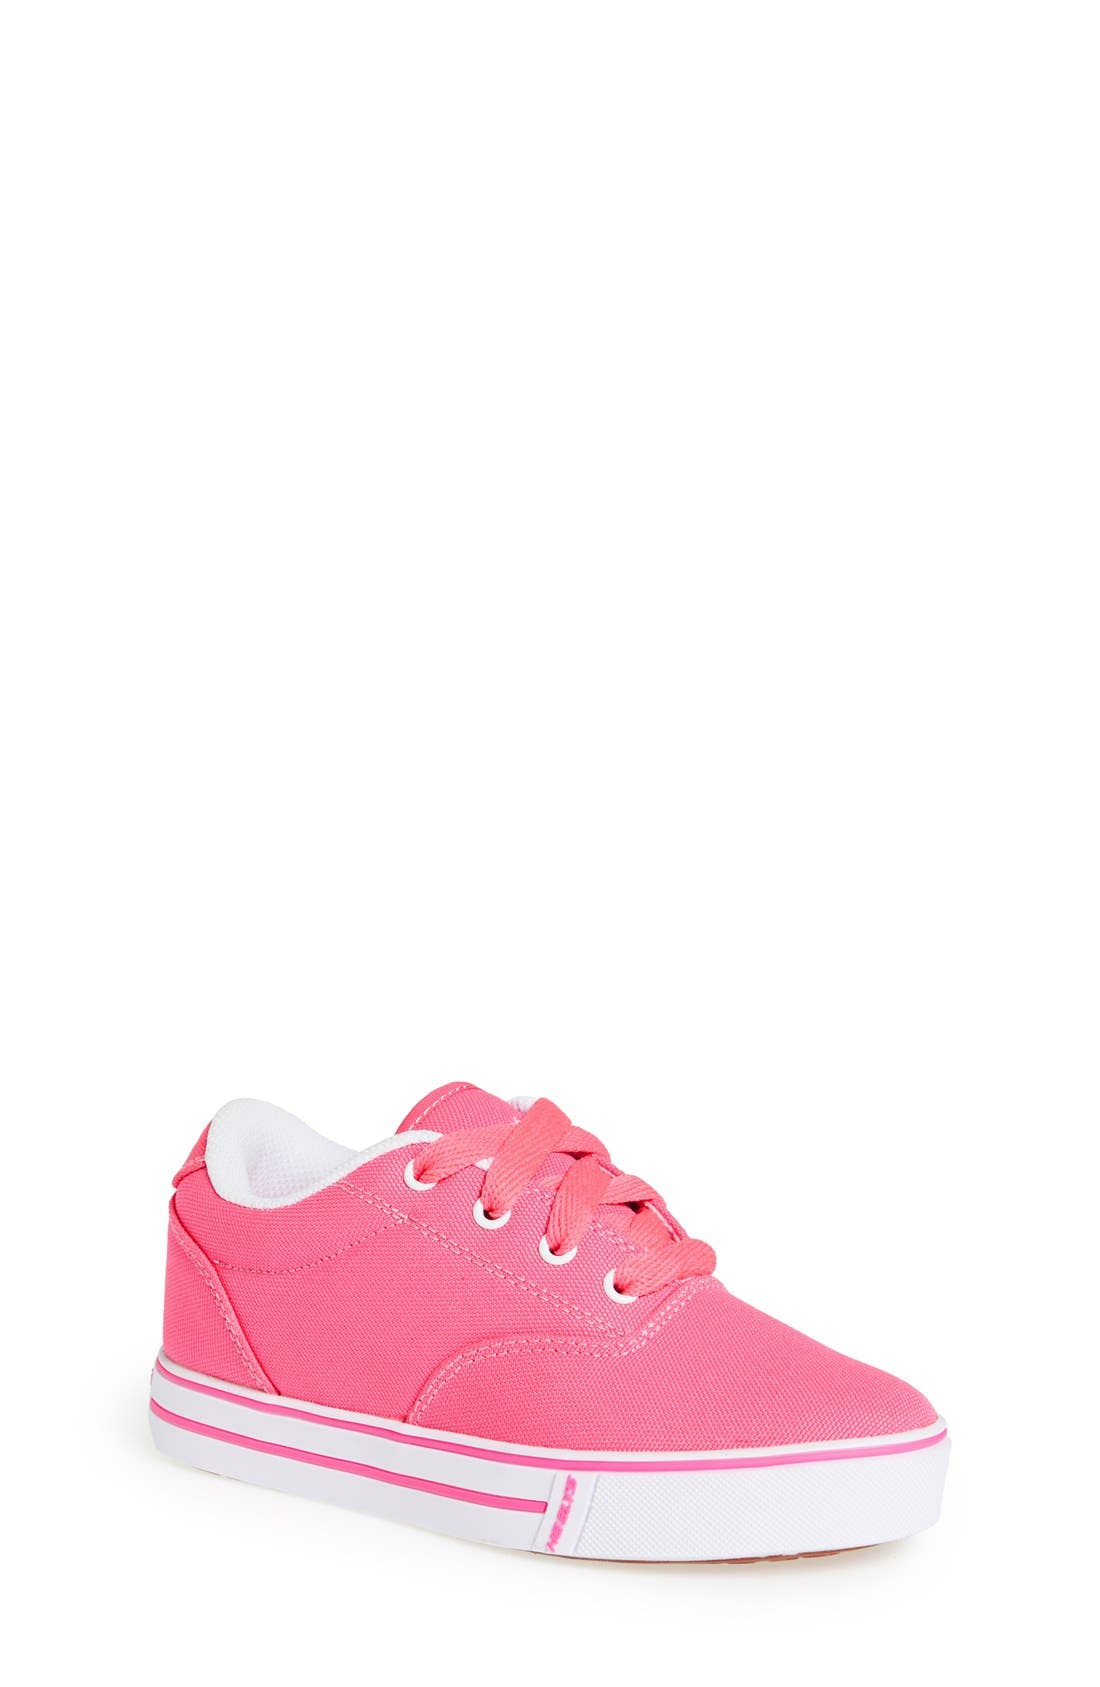 'Launch' Canvas Sneaker,                             Main thumbnail 1, color,                             Neon Pink